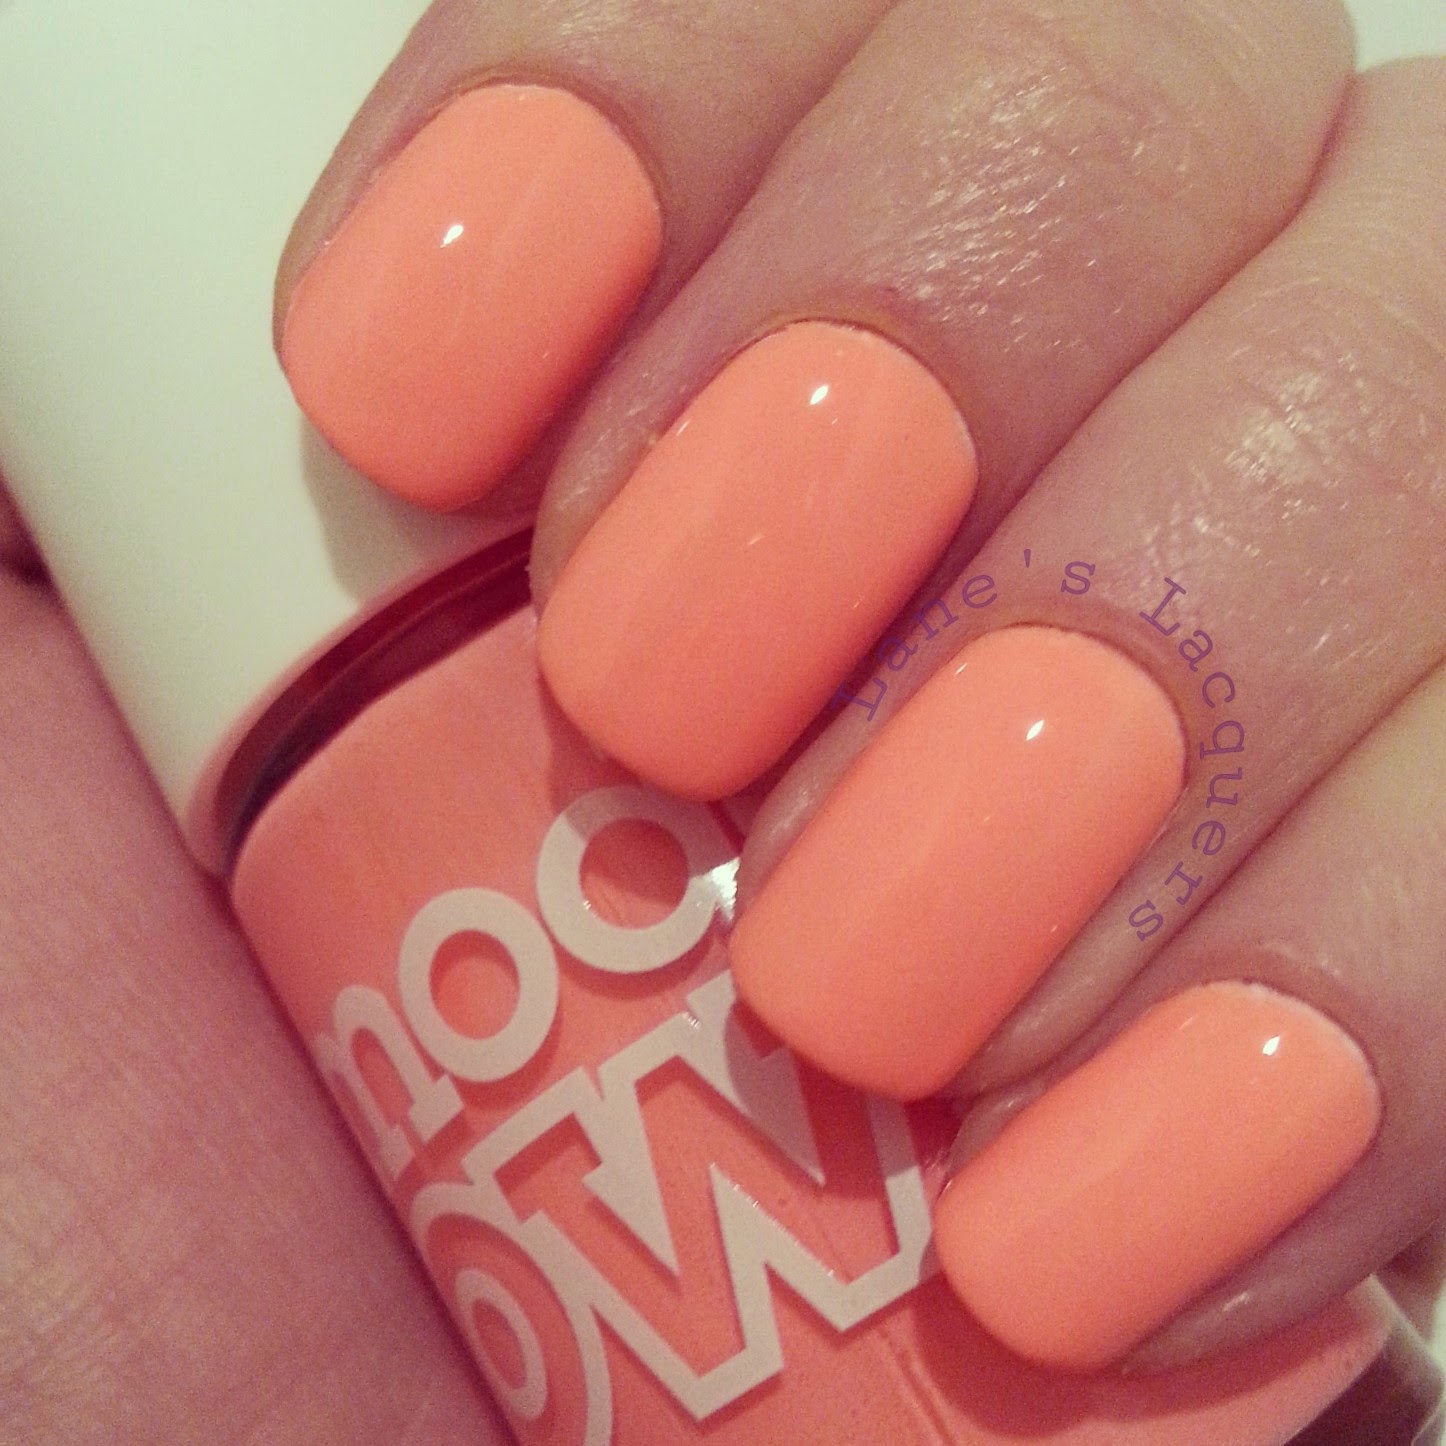 models-own-polish-for-tans-beach-bag-swatch-nails